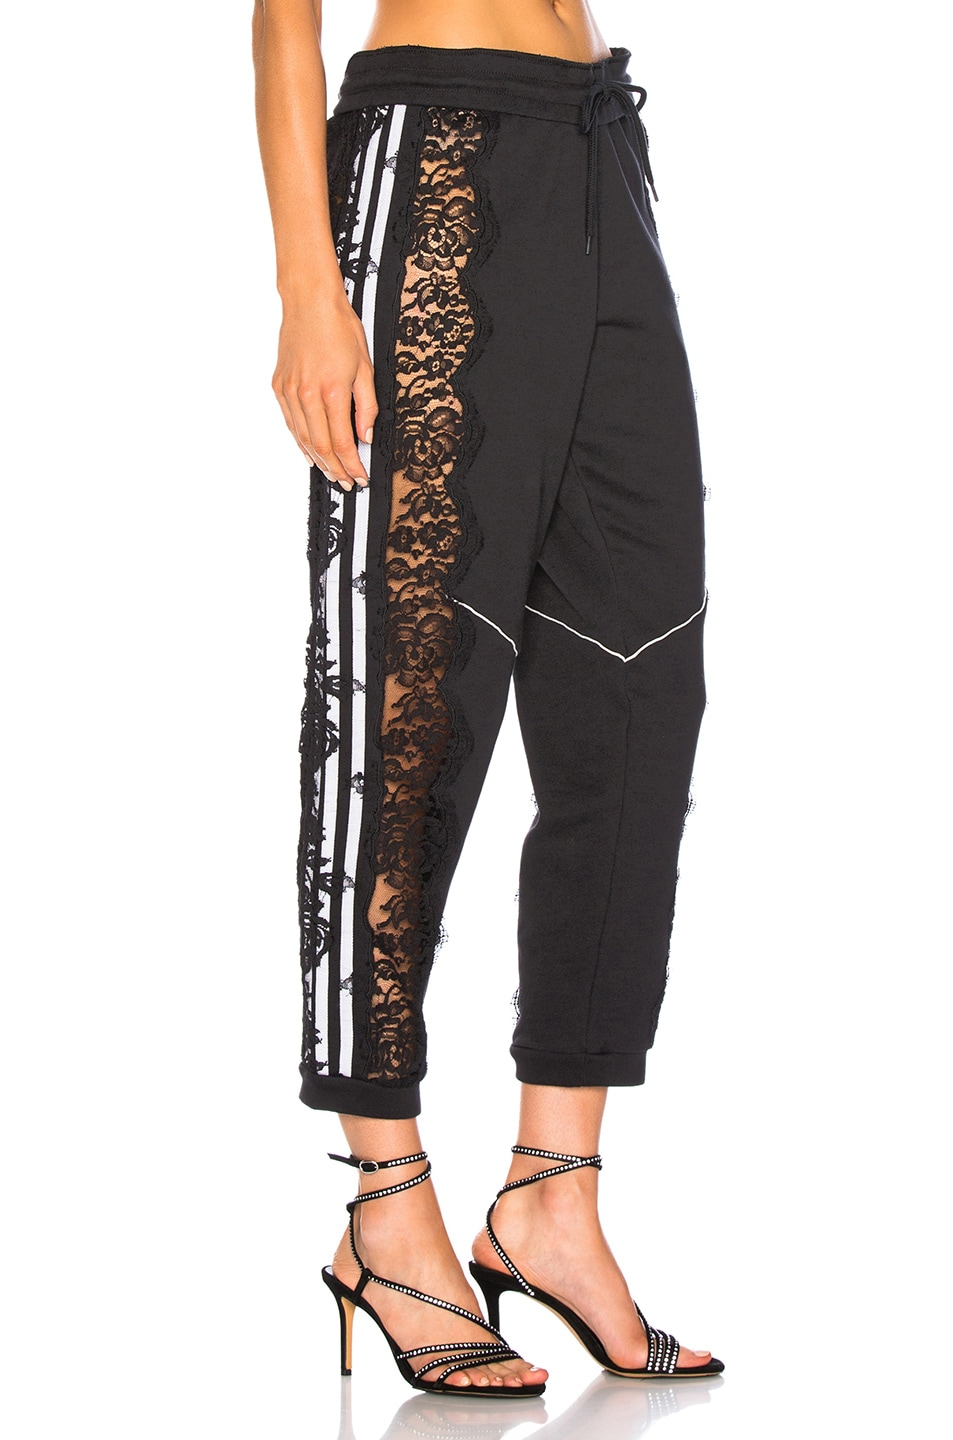 Image 3 of Stella McCartney x adidas Lace Trim Sweatpants in Black